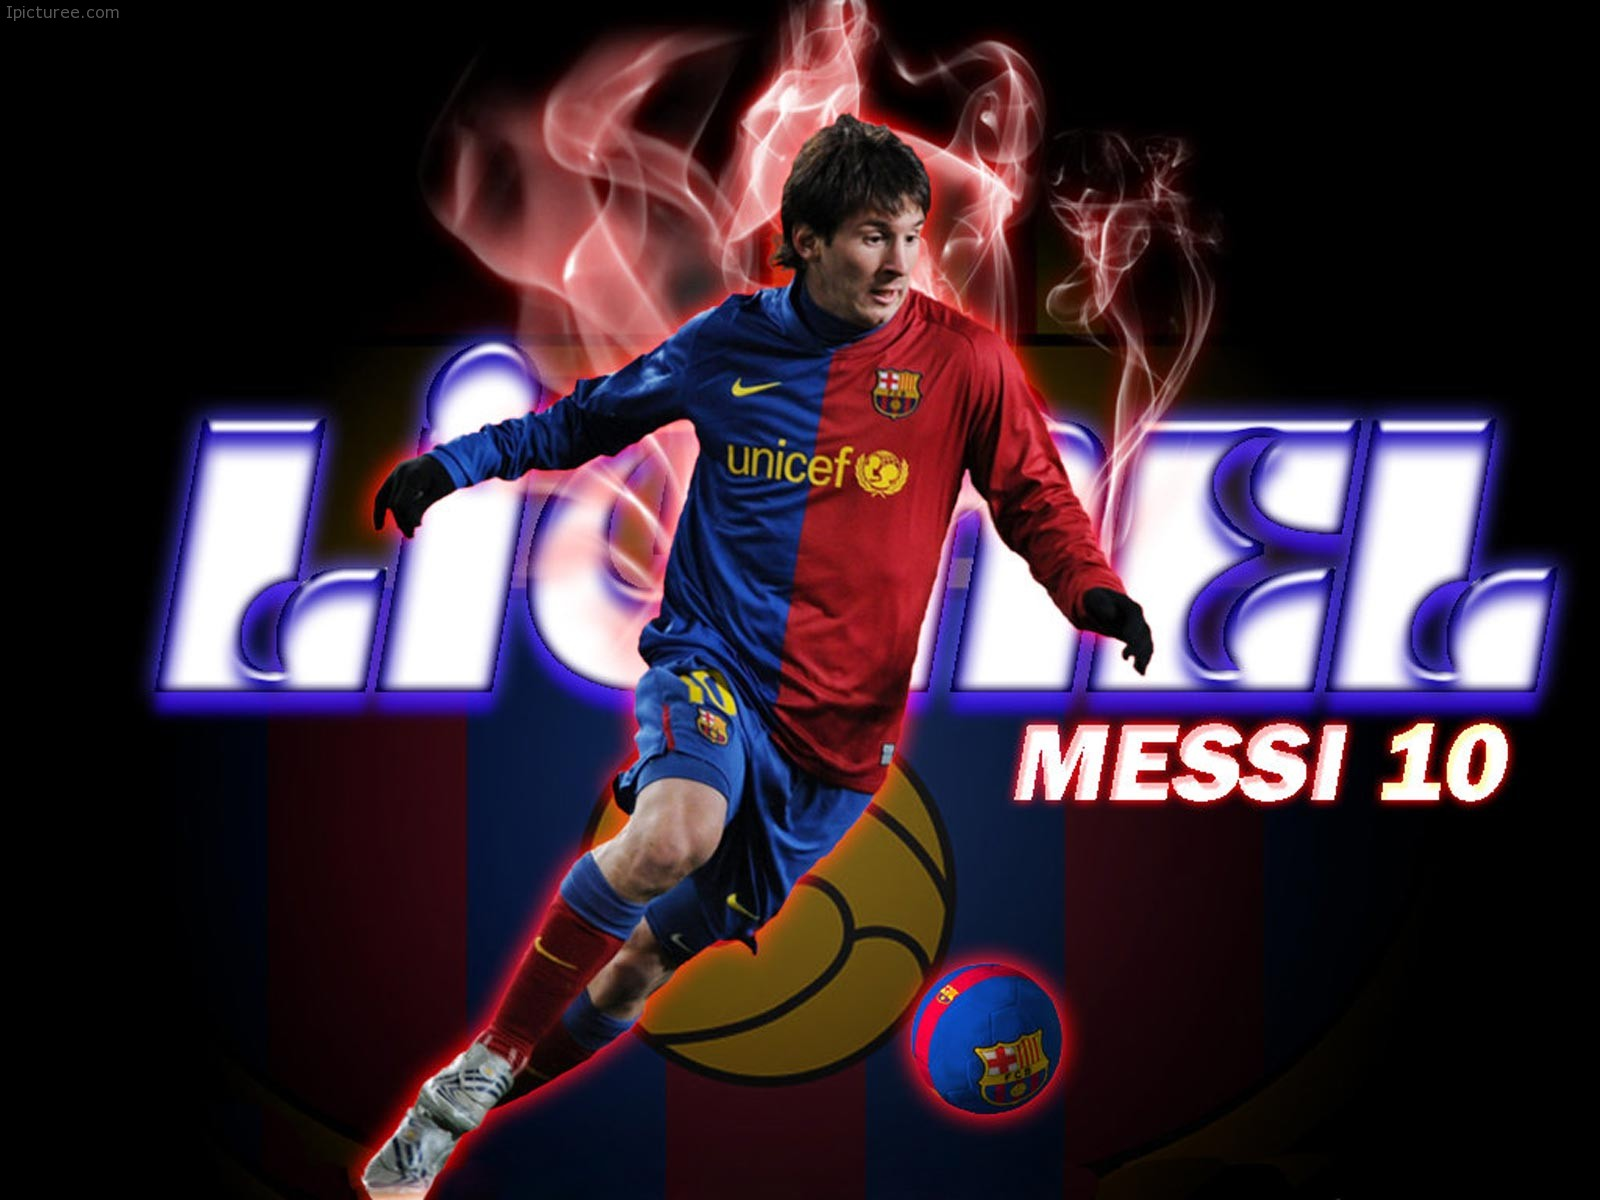 Lionel Messi Image To Wallpaper 1200x1600Px Lionel Messi